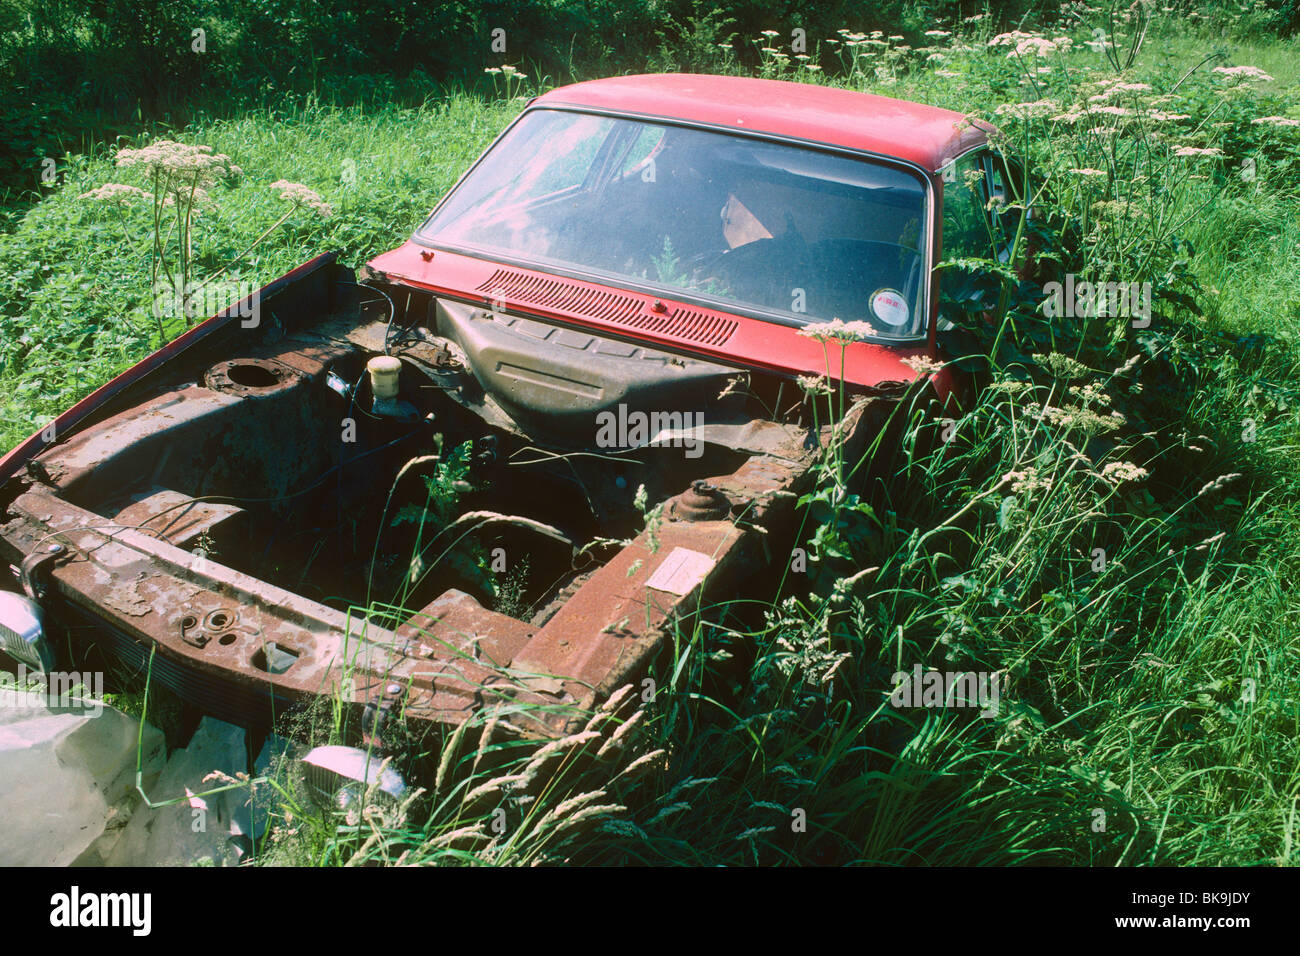 old-car-dumped-in-a-field-BK9JDY.jpg